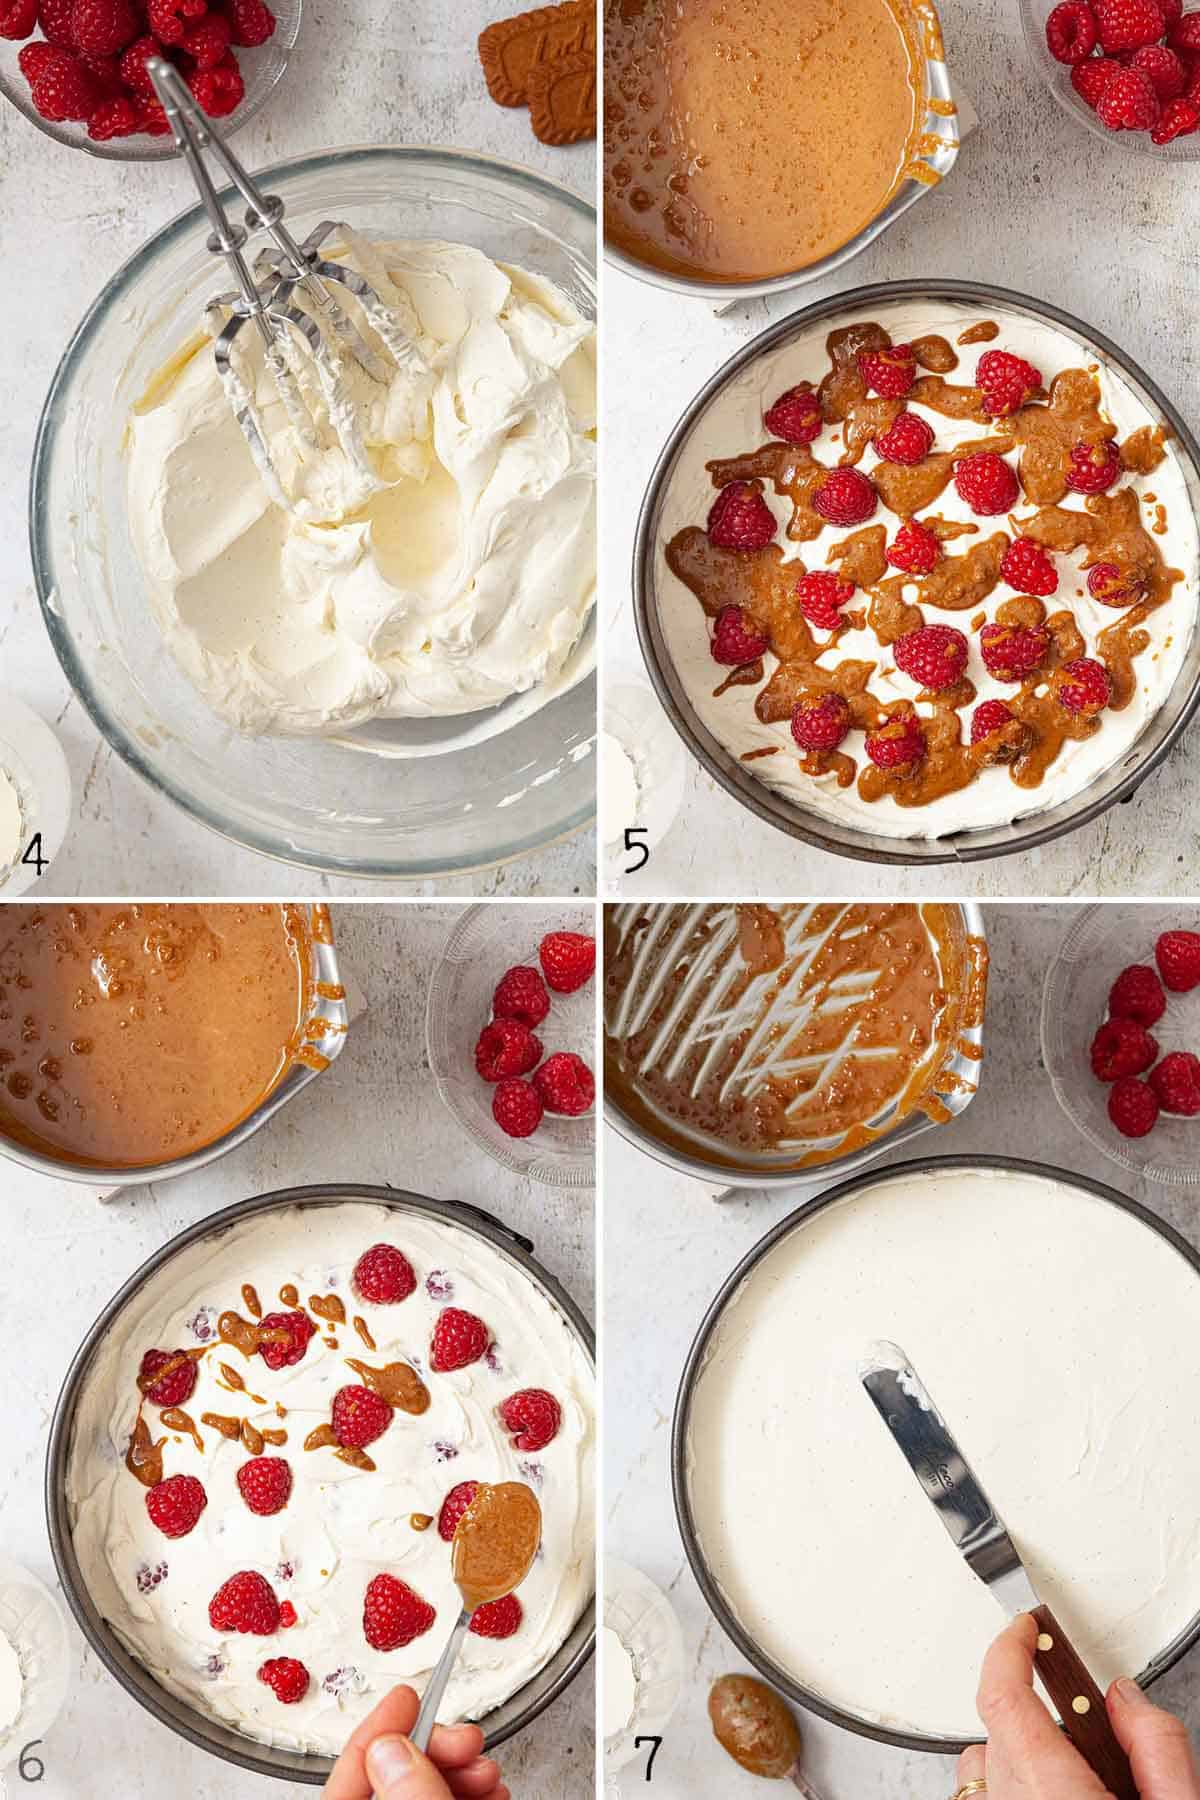 Image collage showing a speculoos cheesecake being assembled in a baking tin